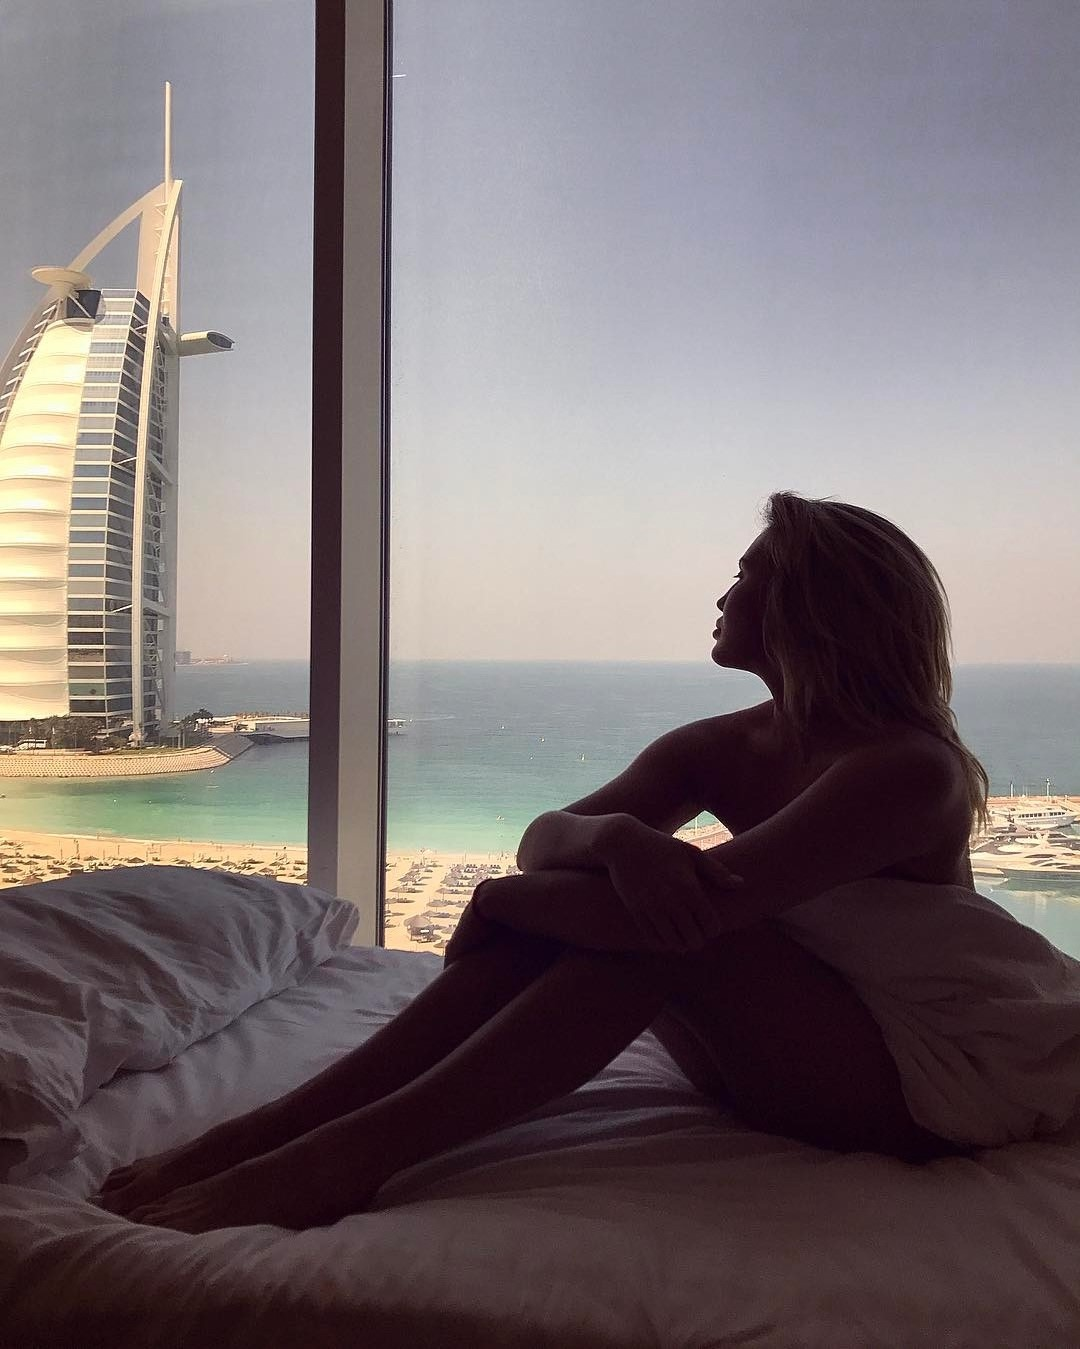 Escort services in Dubai